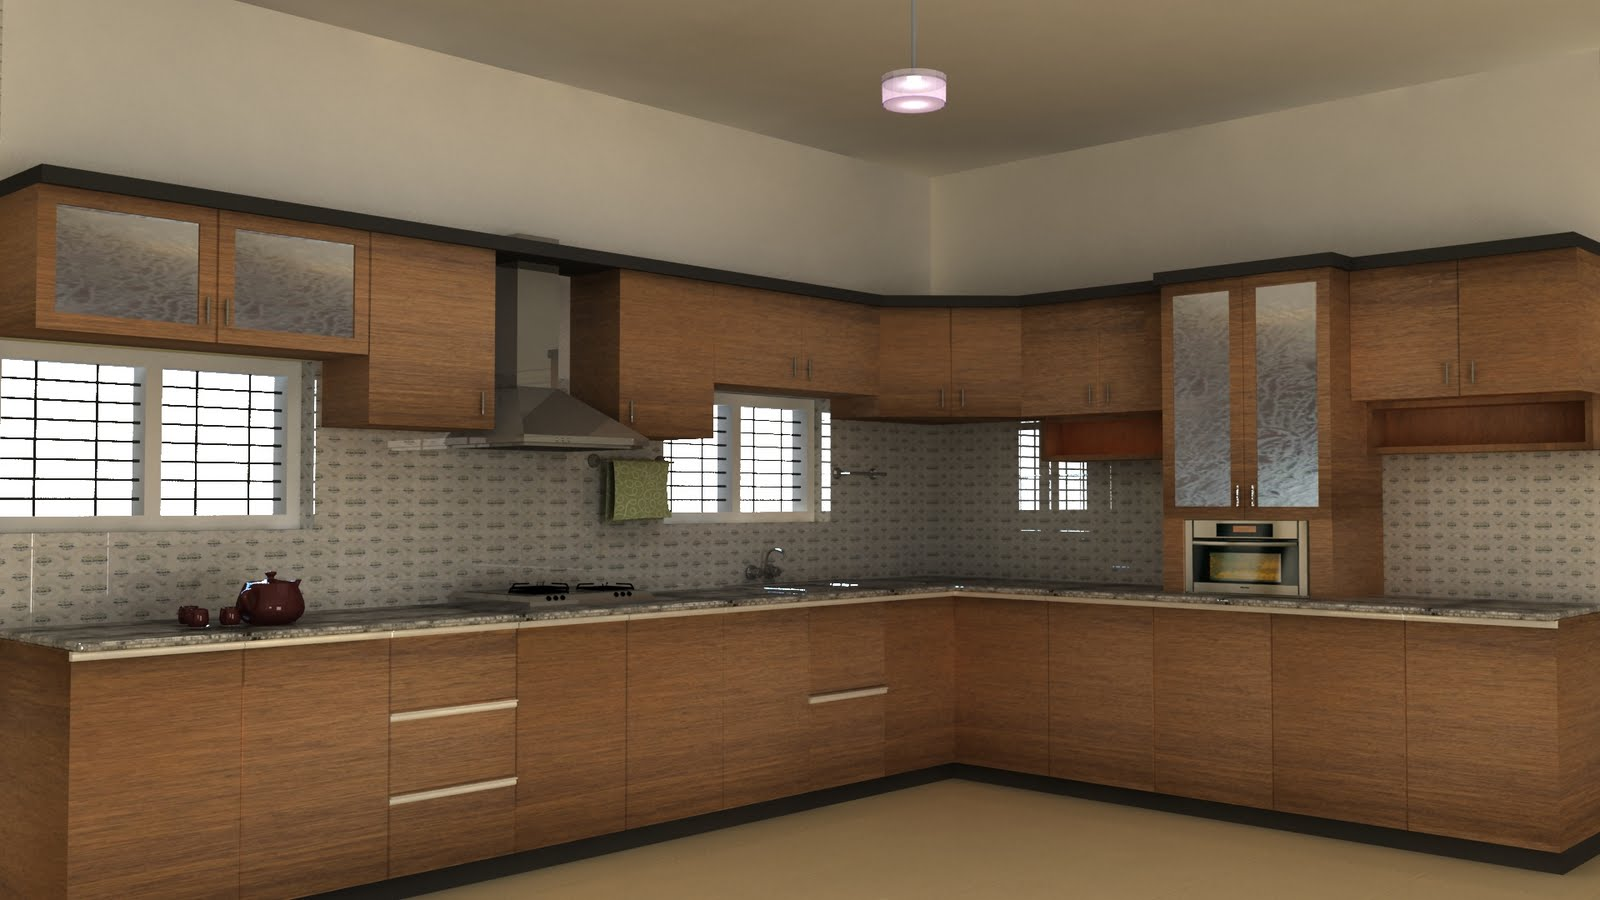 Architectural designing kitchen interiors for Kitchen interior design images